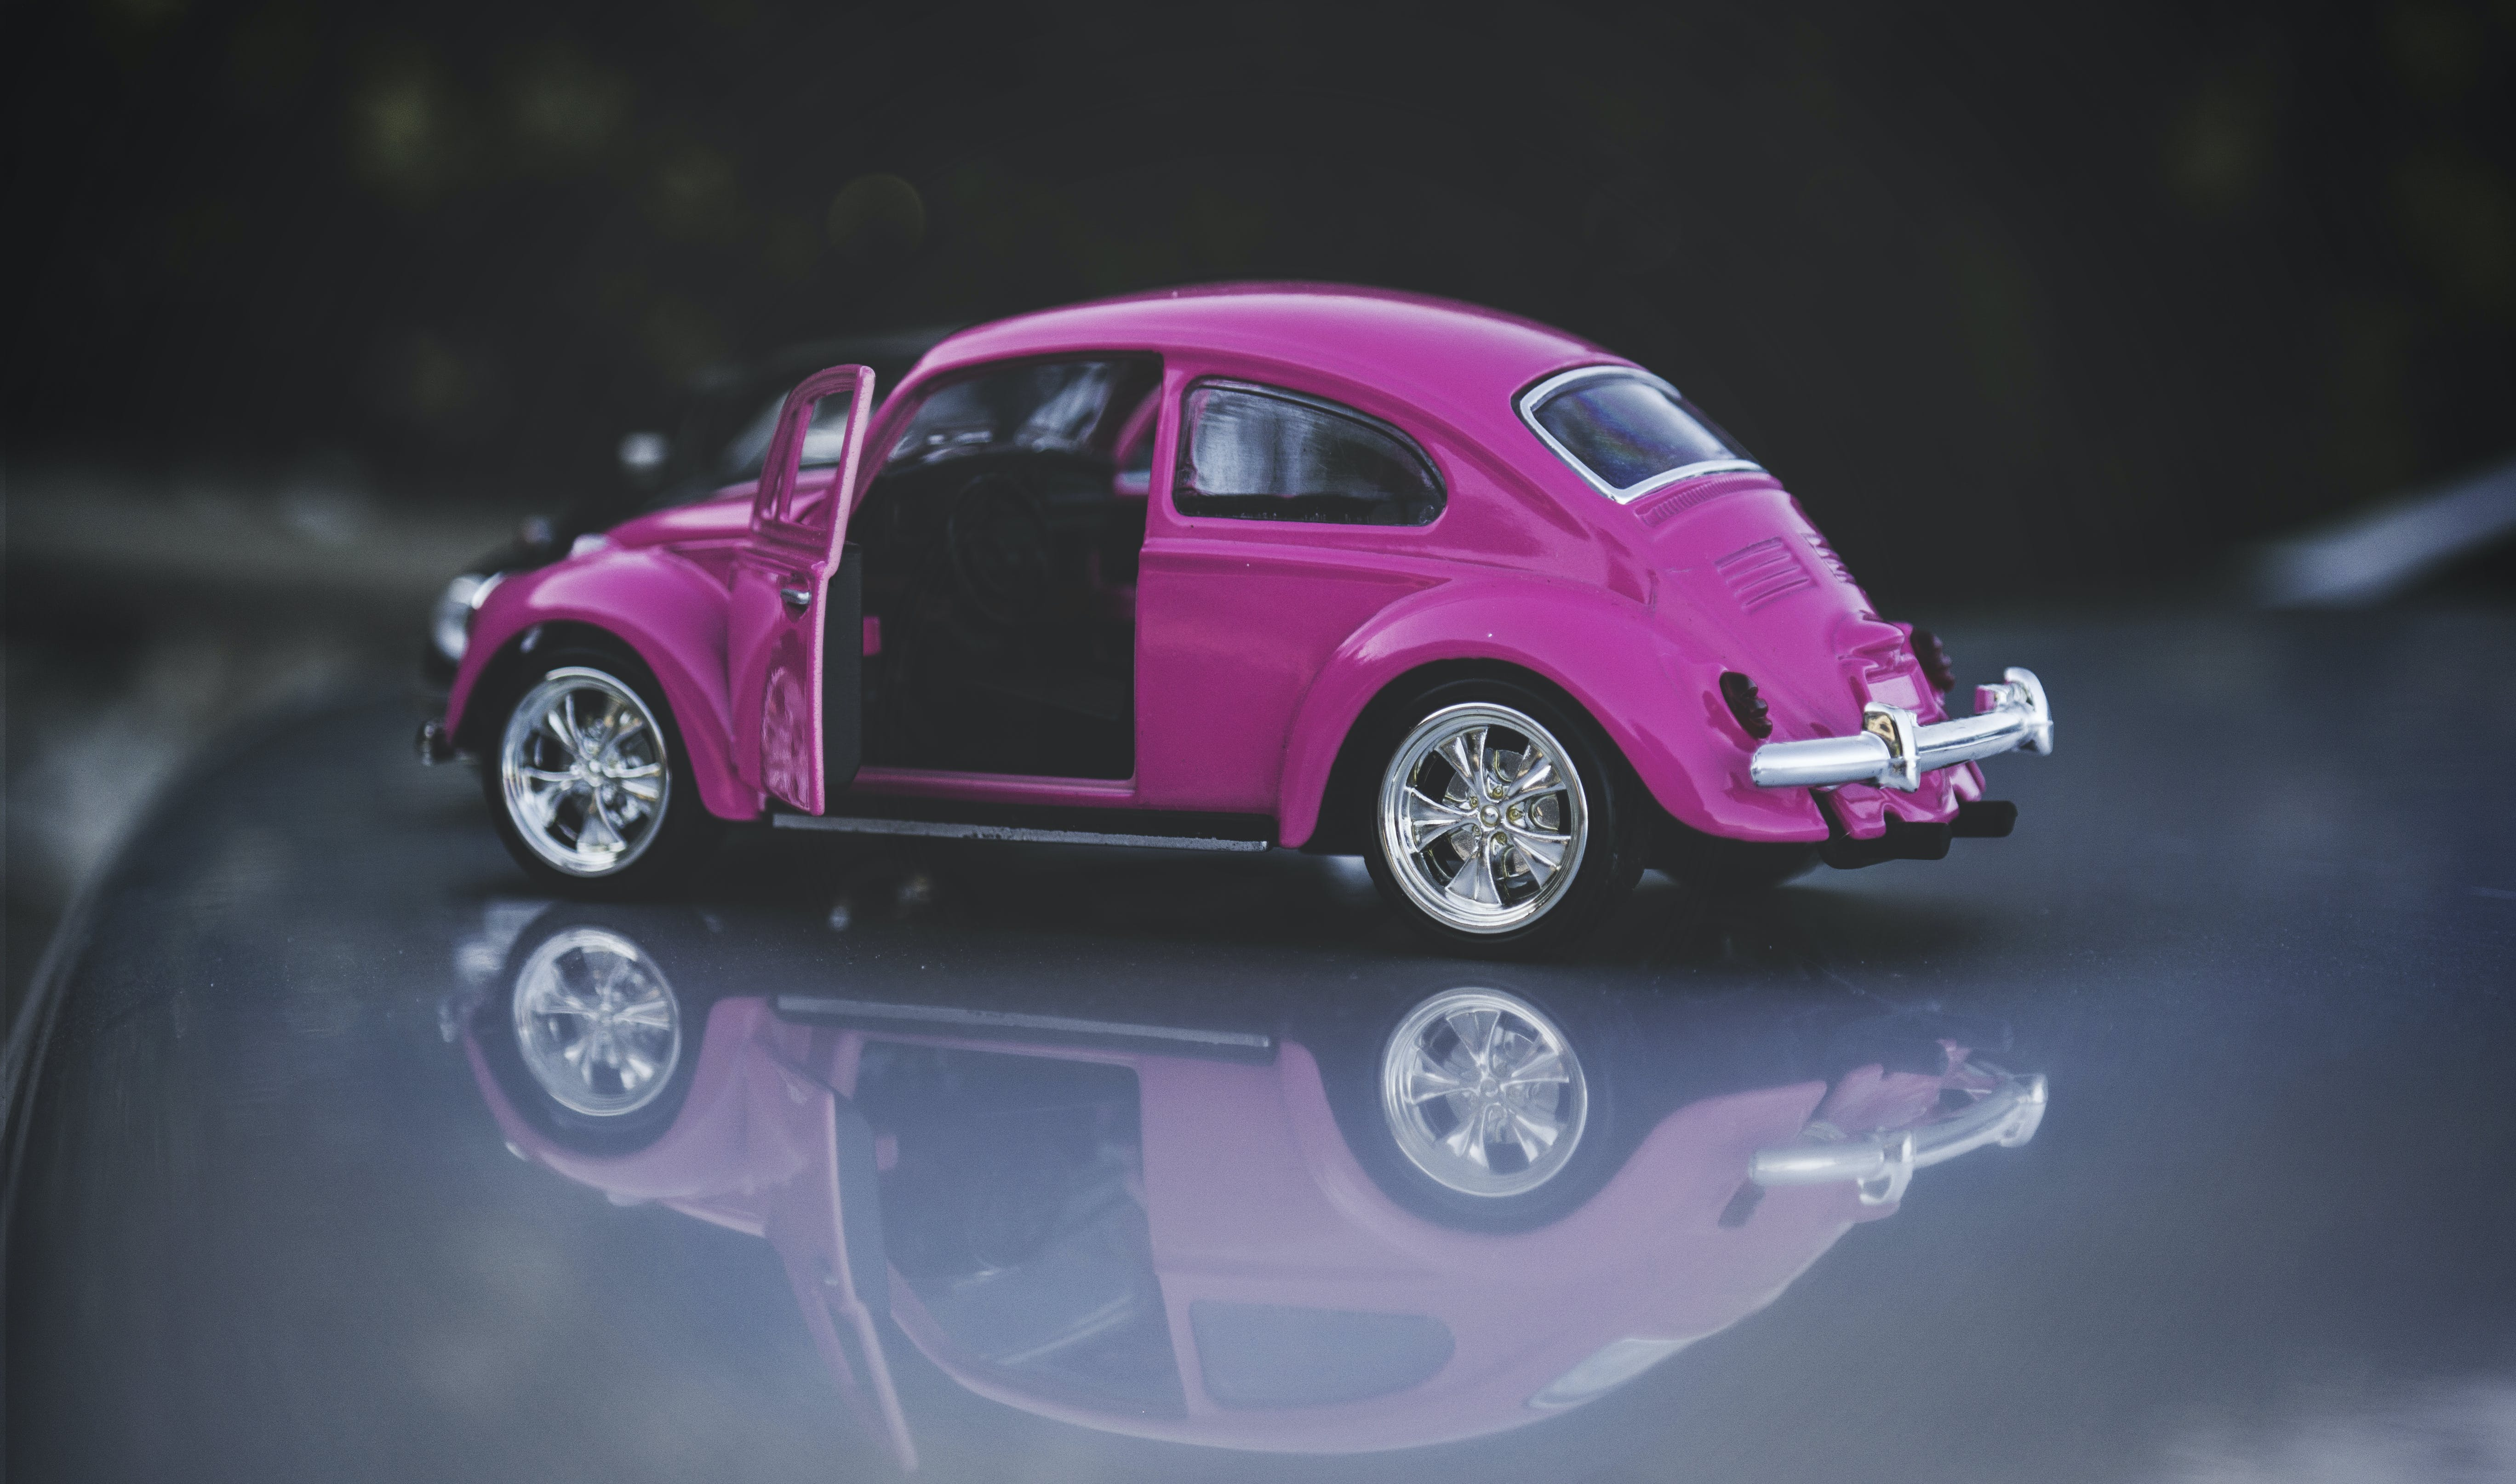 Pink Die-cast Volkswagen Beetle Coupe Scale Model